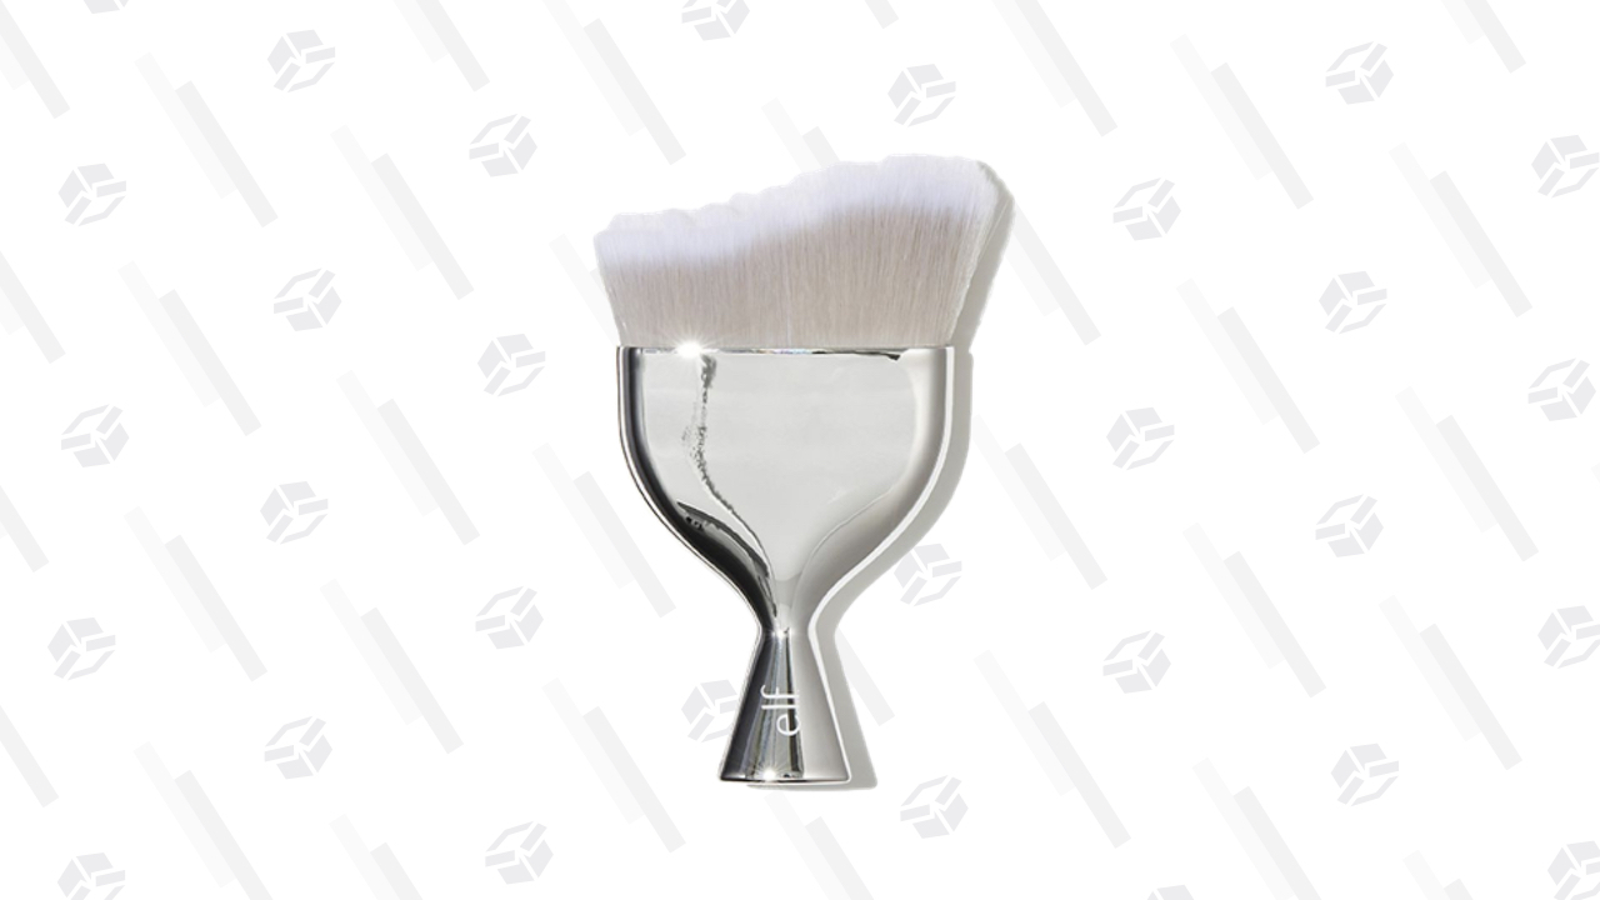 Beautifully Precise Multi Blender Massager | e.l.f. Cosmetics The large brush head and uneven bristles help blend product for a softer overall finish, while the paint-brush like handle gives you optimal control for larger sweeps of face powders and bronzers.